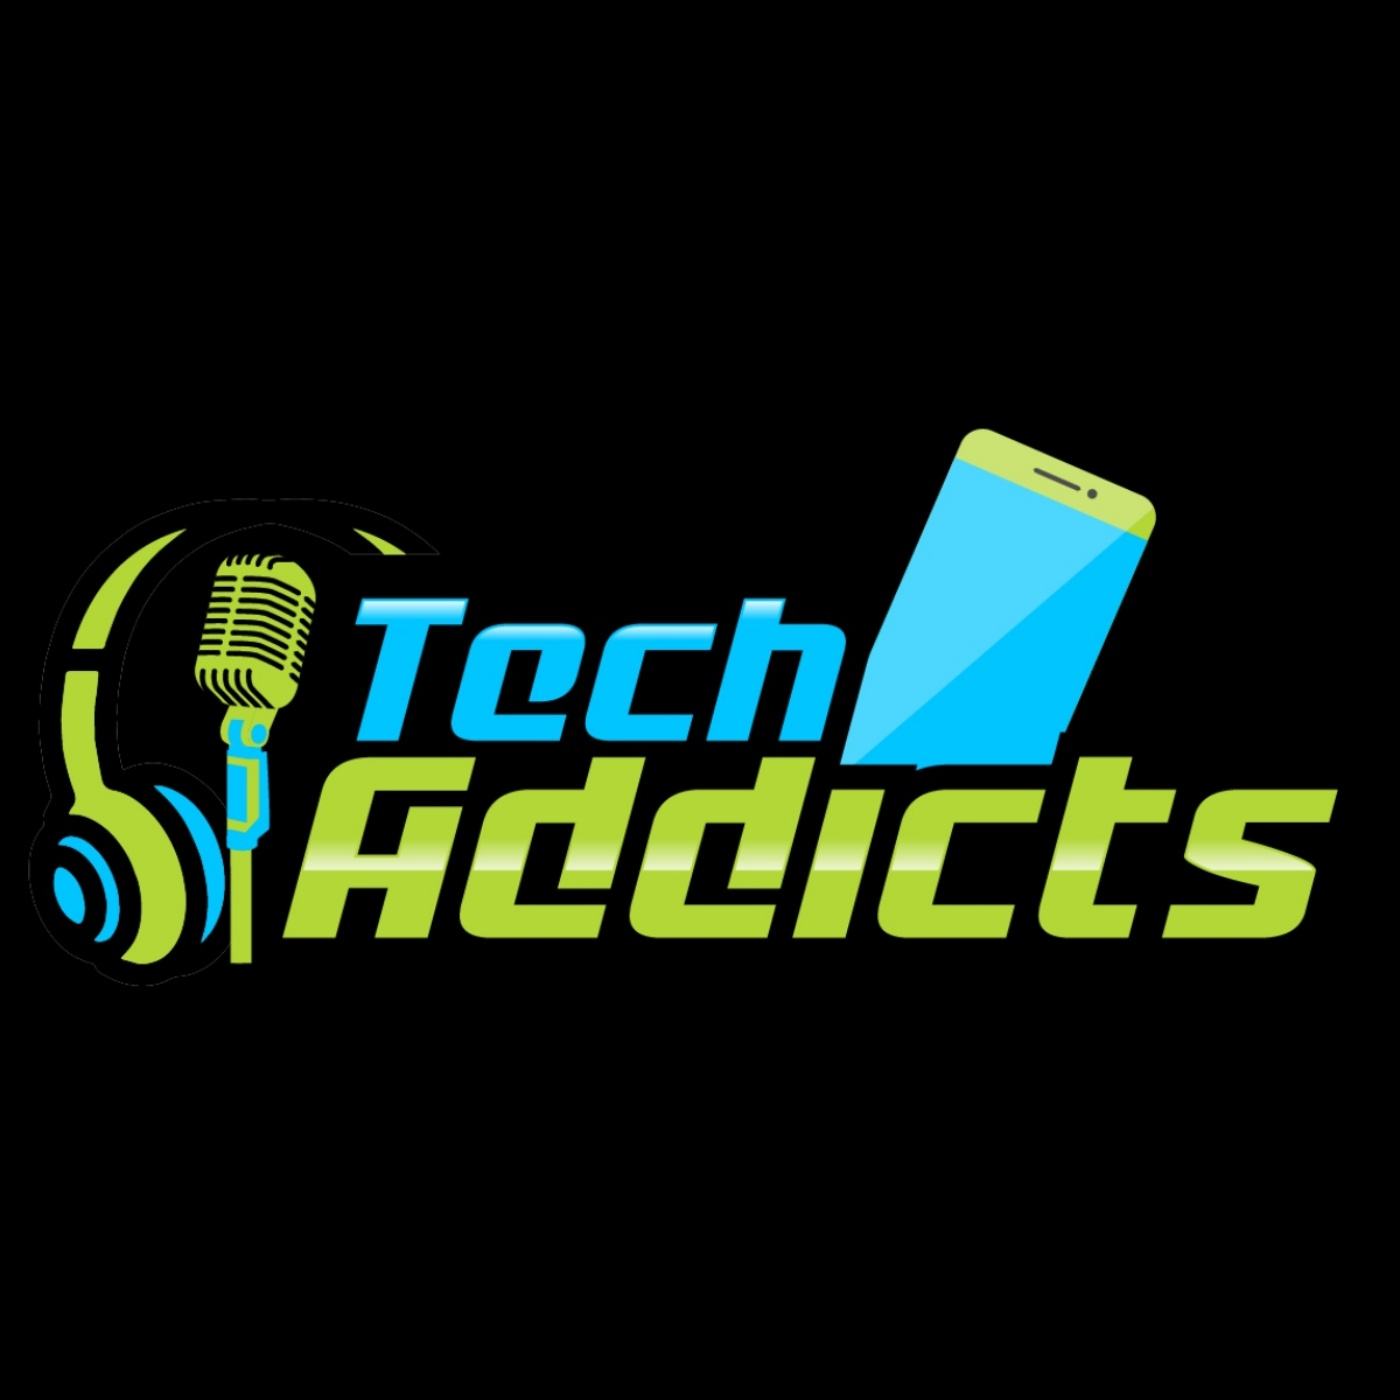 Tech Addicts Podcast - 24th January 2021 - Cheers Gears!